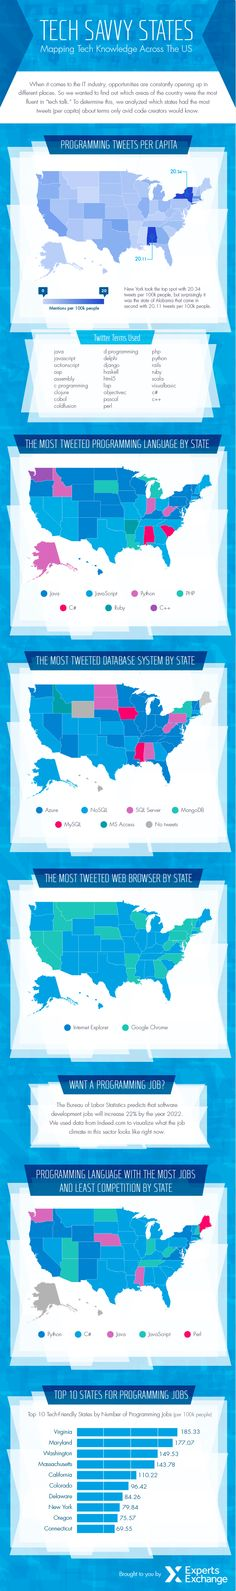 The Most Tech Savvy States in America (According to #Twitter) [INFOGRAPHIC]